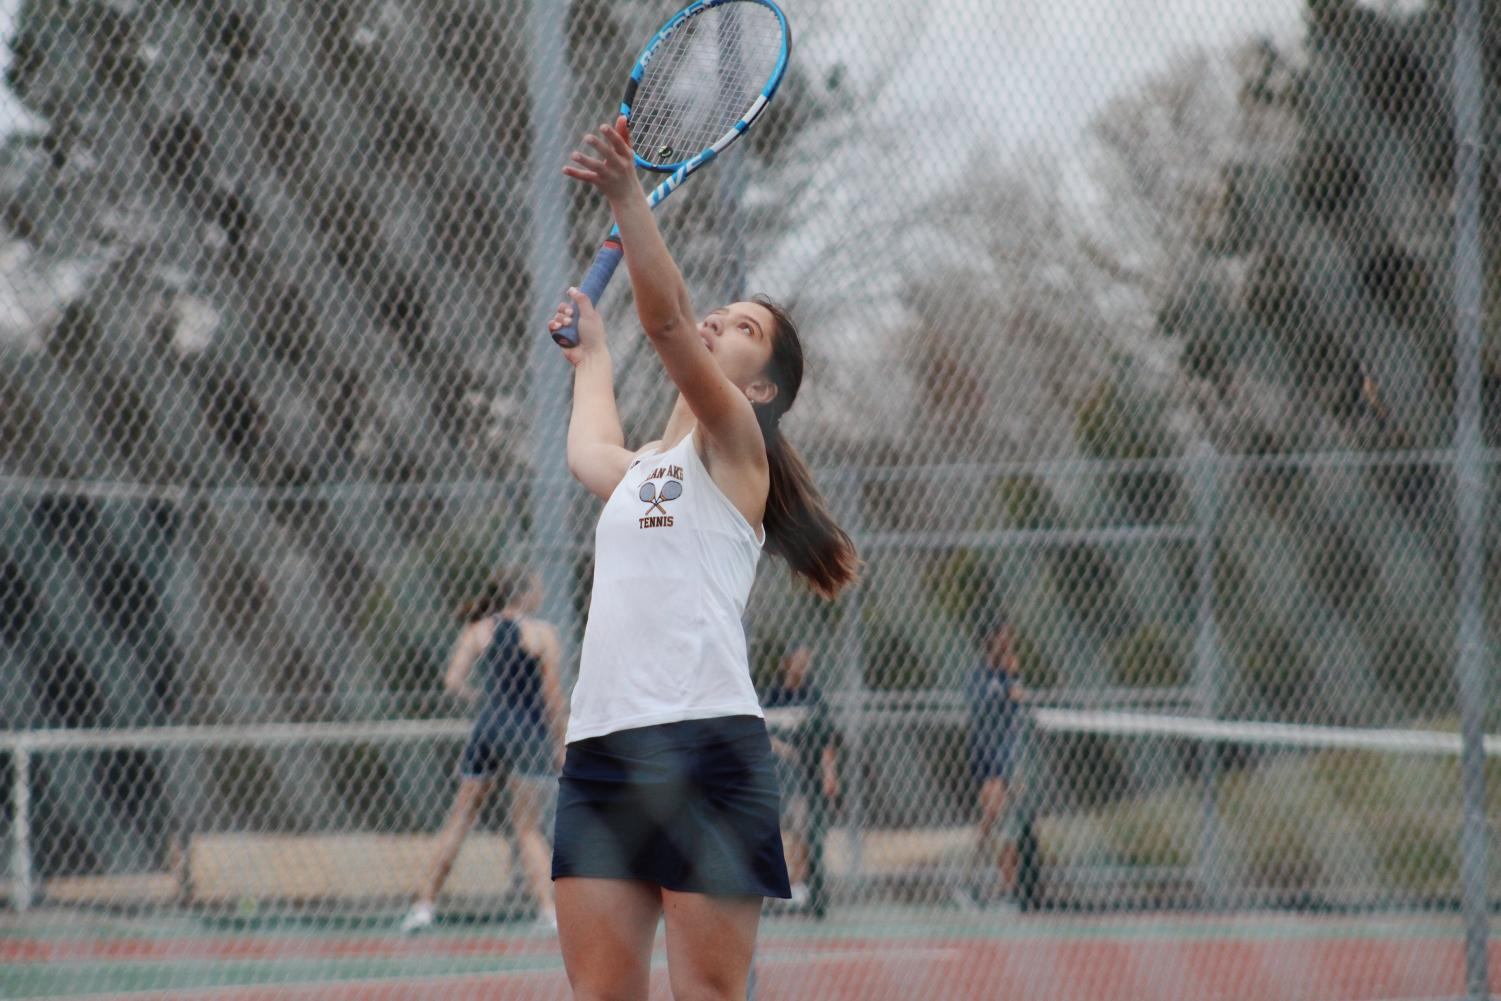 Sophomore and number one ranked player Andrea Ayala serves during her singles match at Ocean Lakes High School on March 25.